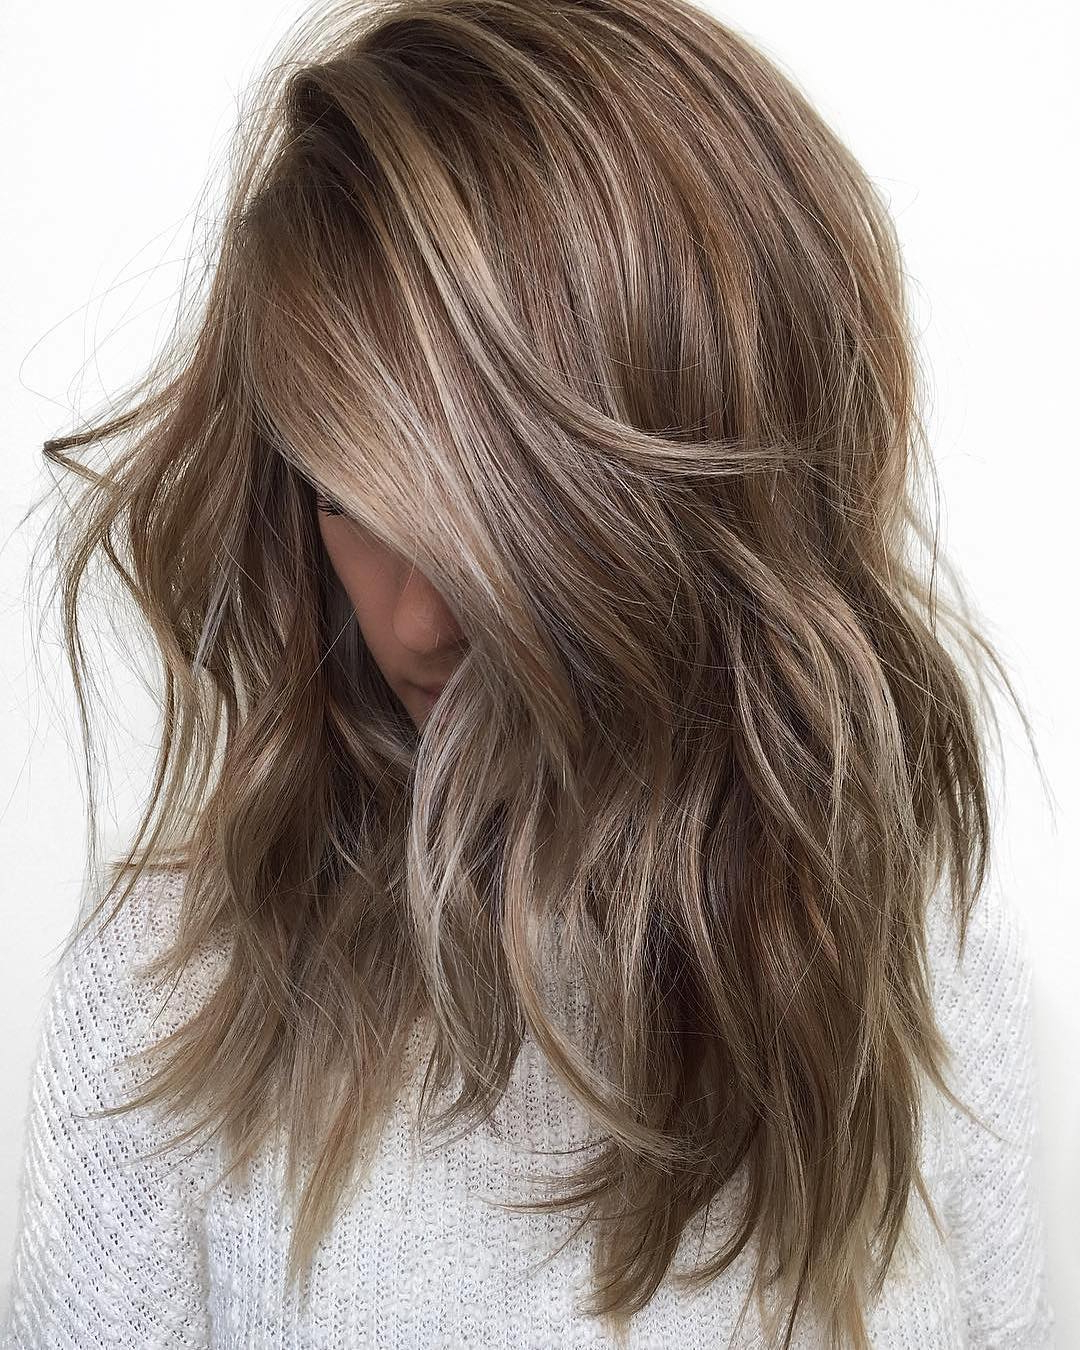 10 Medium Length Hair Color Ideas 2019 With Regard To Gray Hairstyles With High Layers (View 4 of 20)